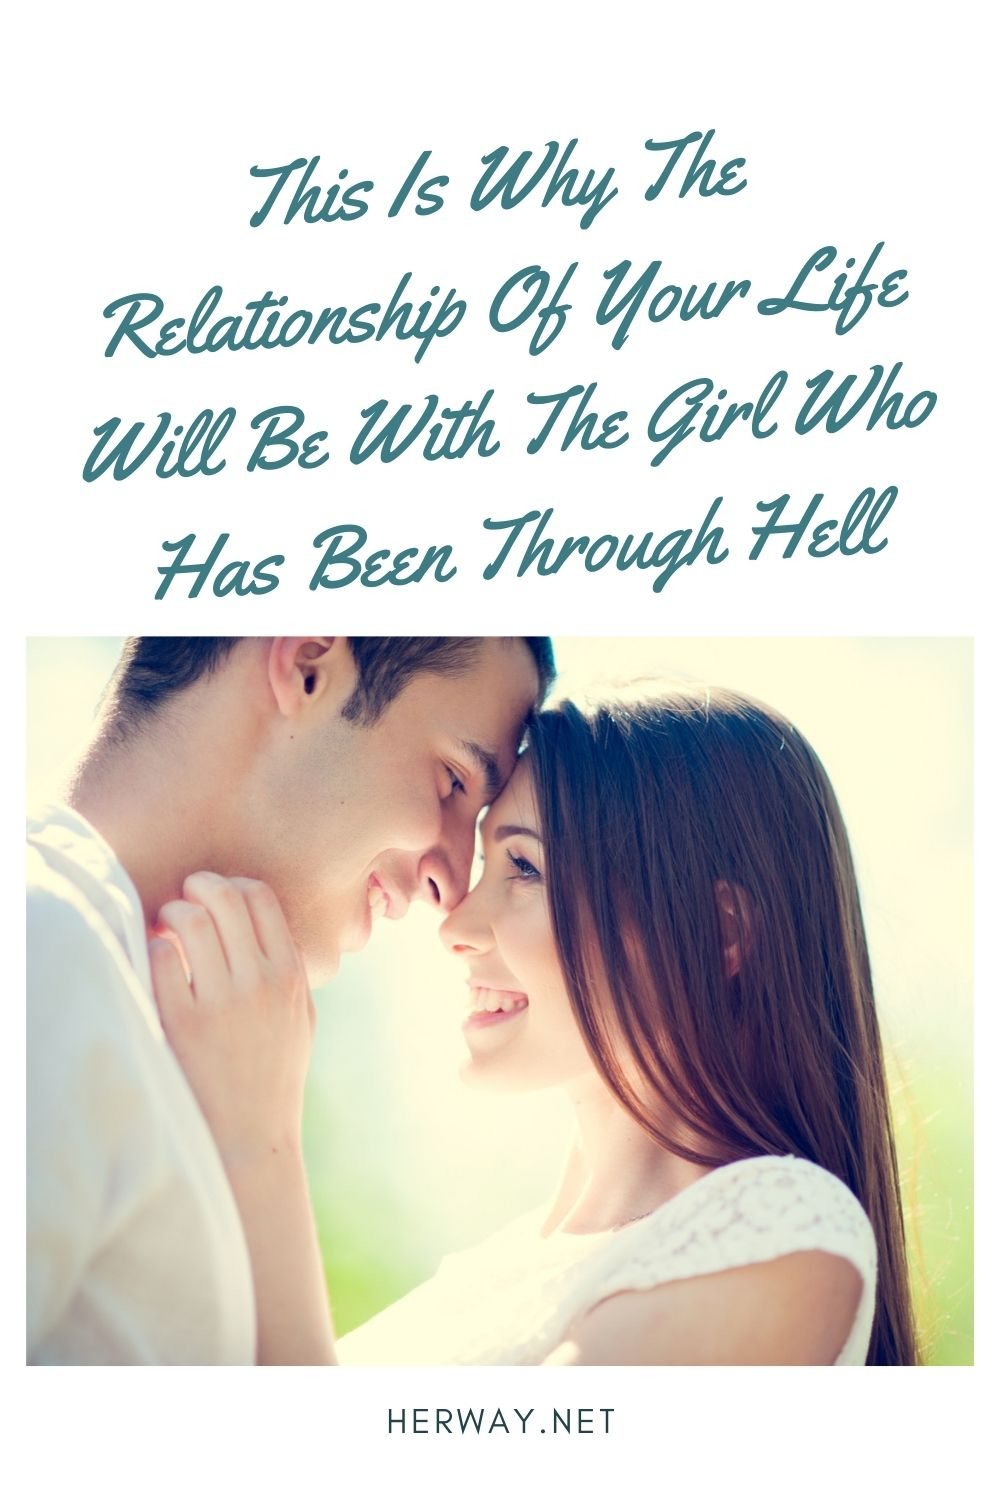 This Is Why The Relationship Of Your Life Will Be With The Girl Who Has Been Through Hell